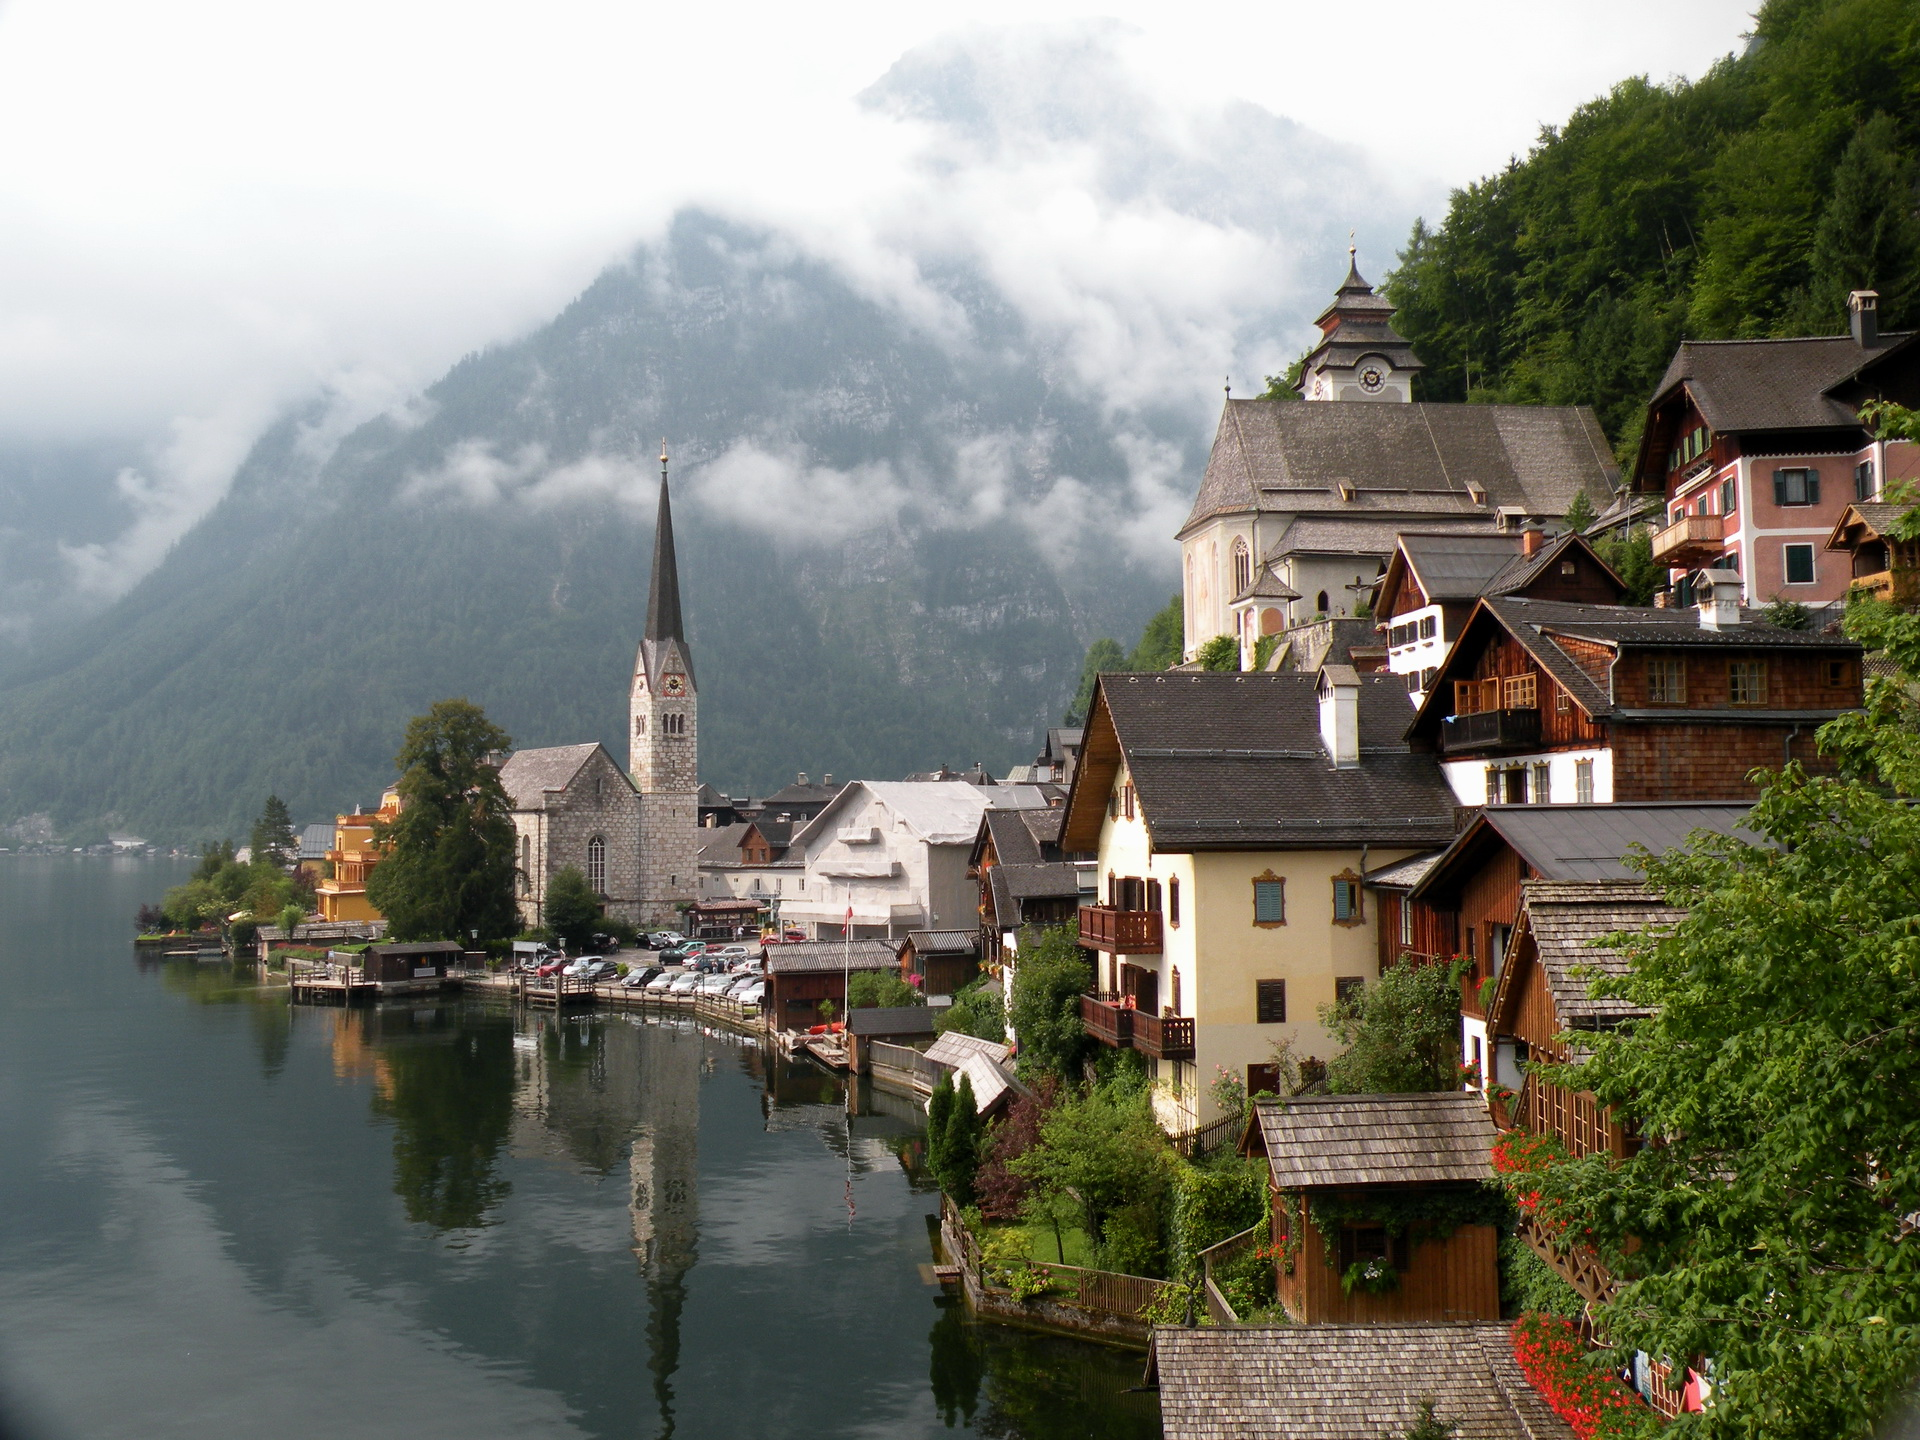 Iphone X Wallpaper Full Hd Hallstatt Austria Full Hd 壁纸 And 背景 1920x1440 Id 247584